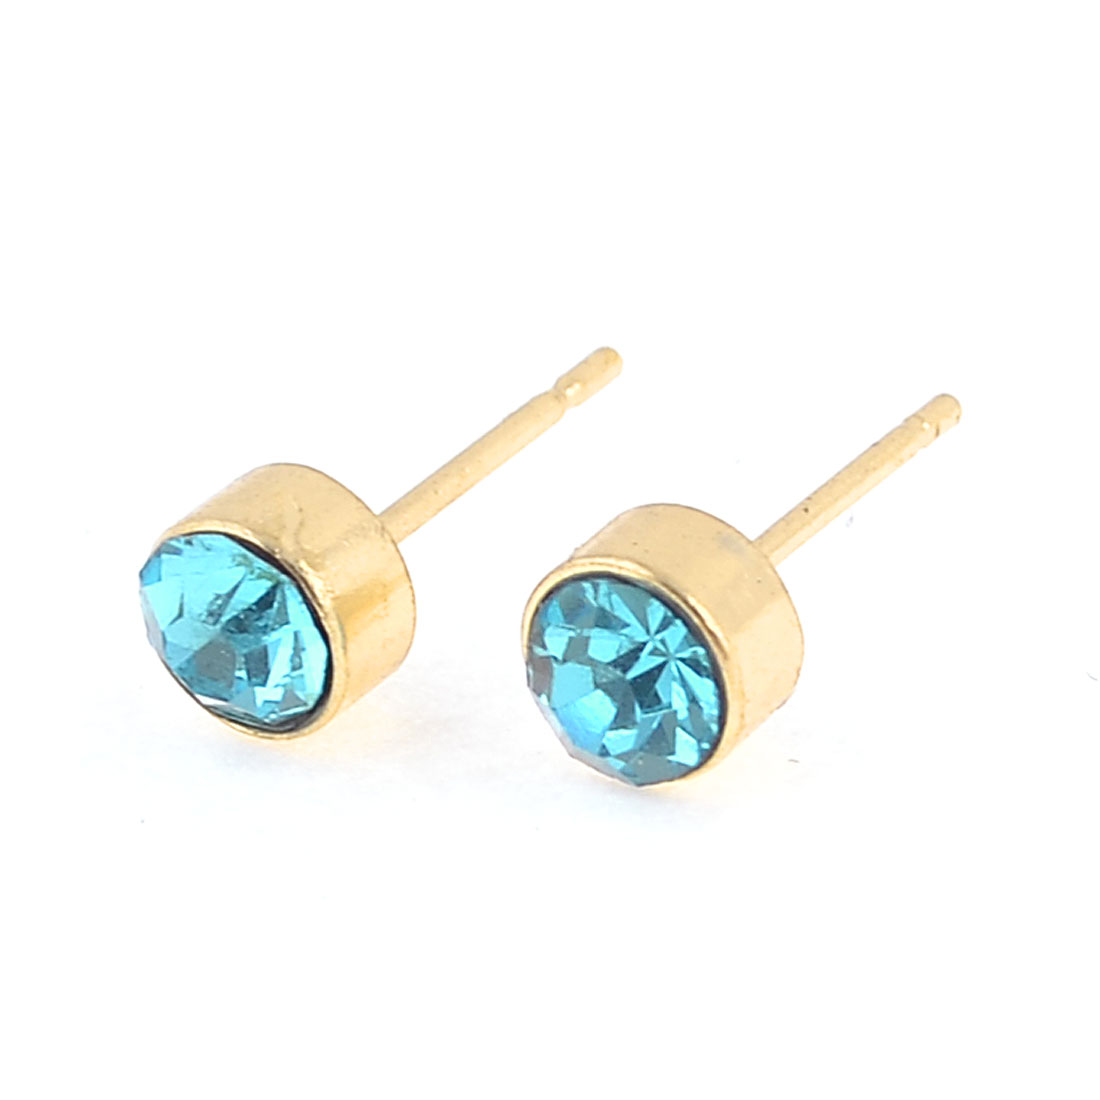 Women Ear Ornament Lignt Blue Glittery Rhinestone Accent Stud Earrings Pair